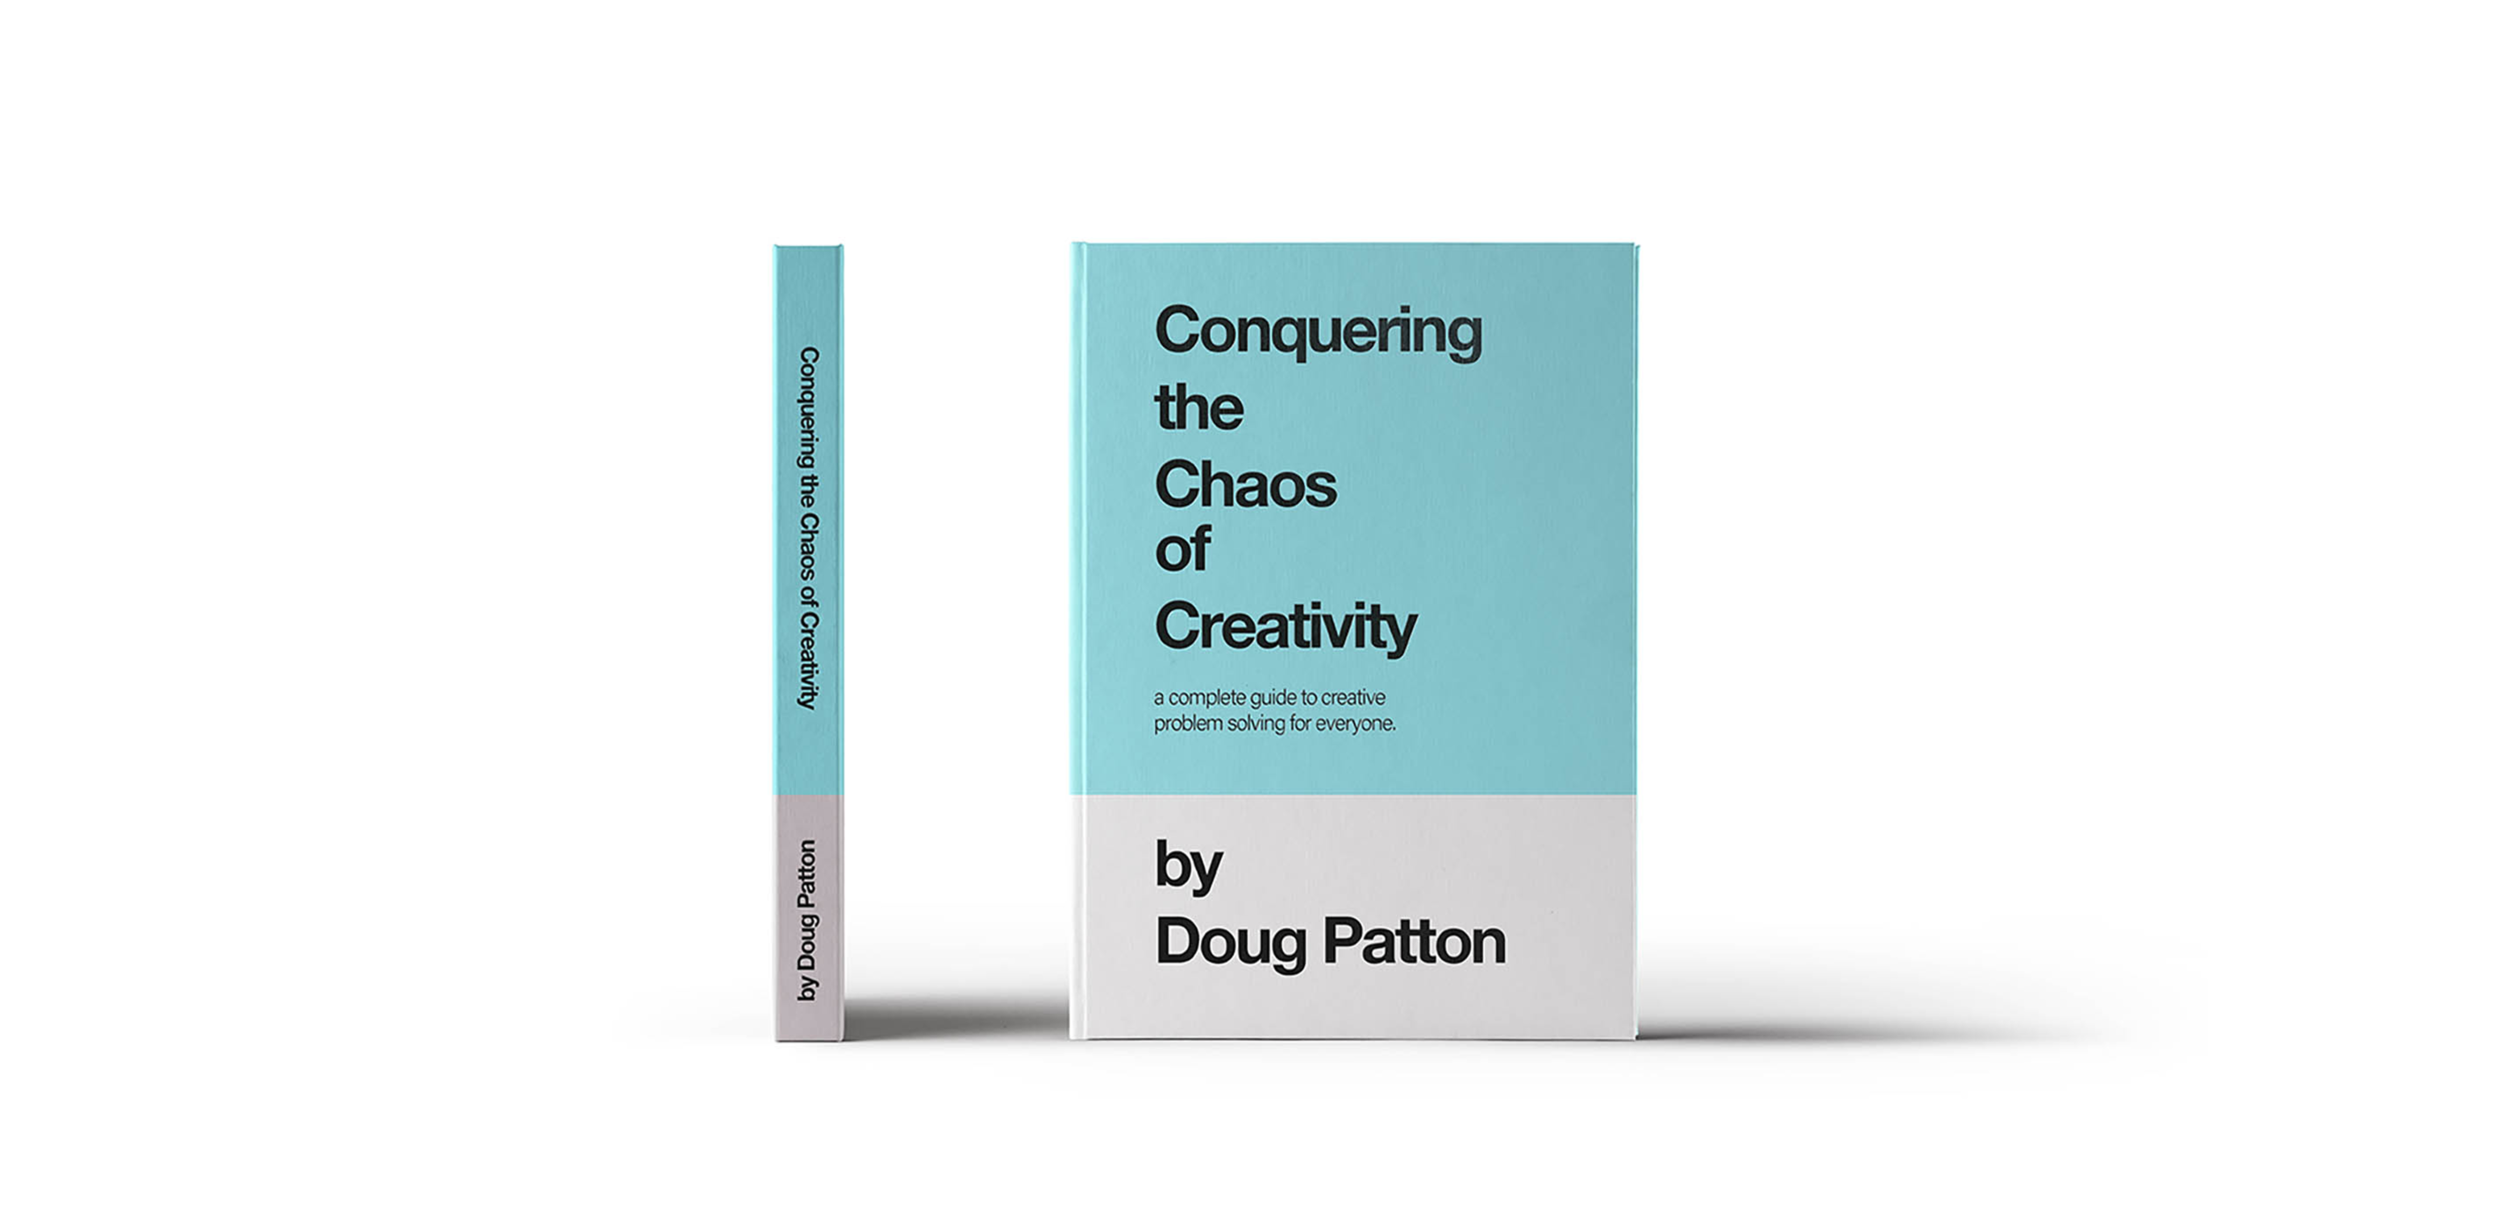 MAIN 1_Conquering the Chaos of Creativity_Doug Patton_Patton Design.png